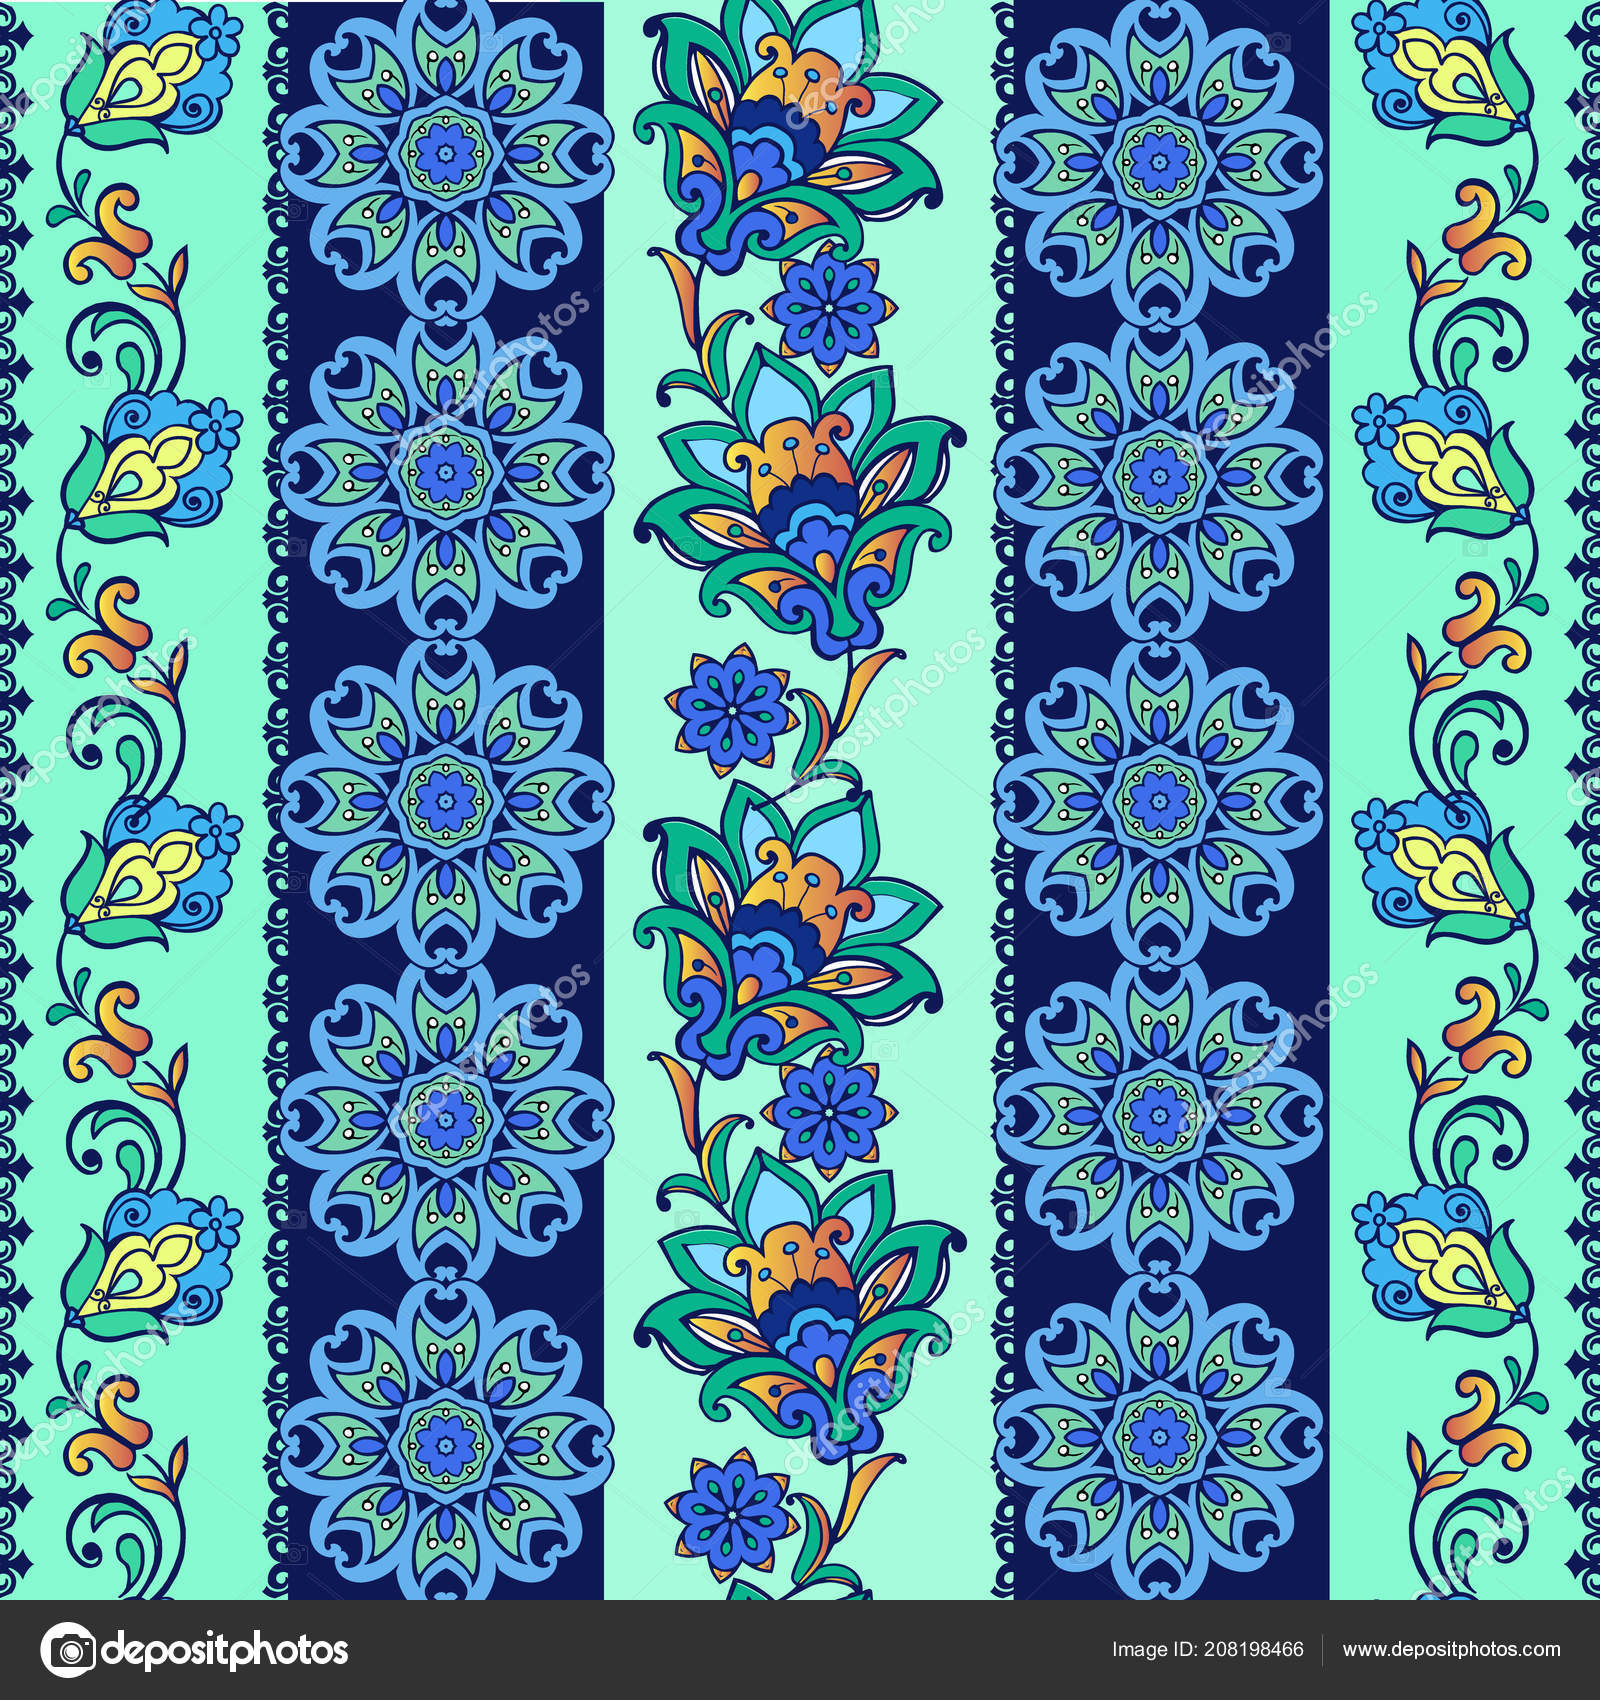 Flower Borders Fantastic Flowers Vintage Flowers Backgrounds